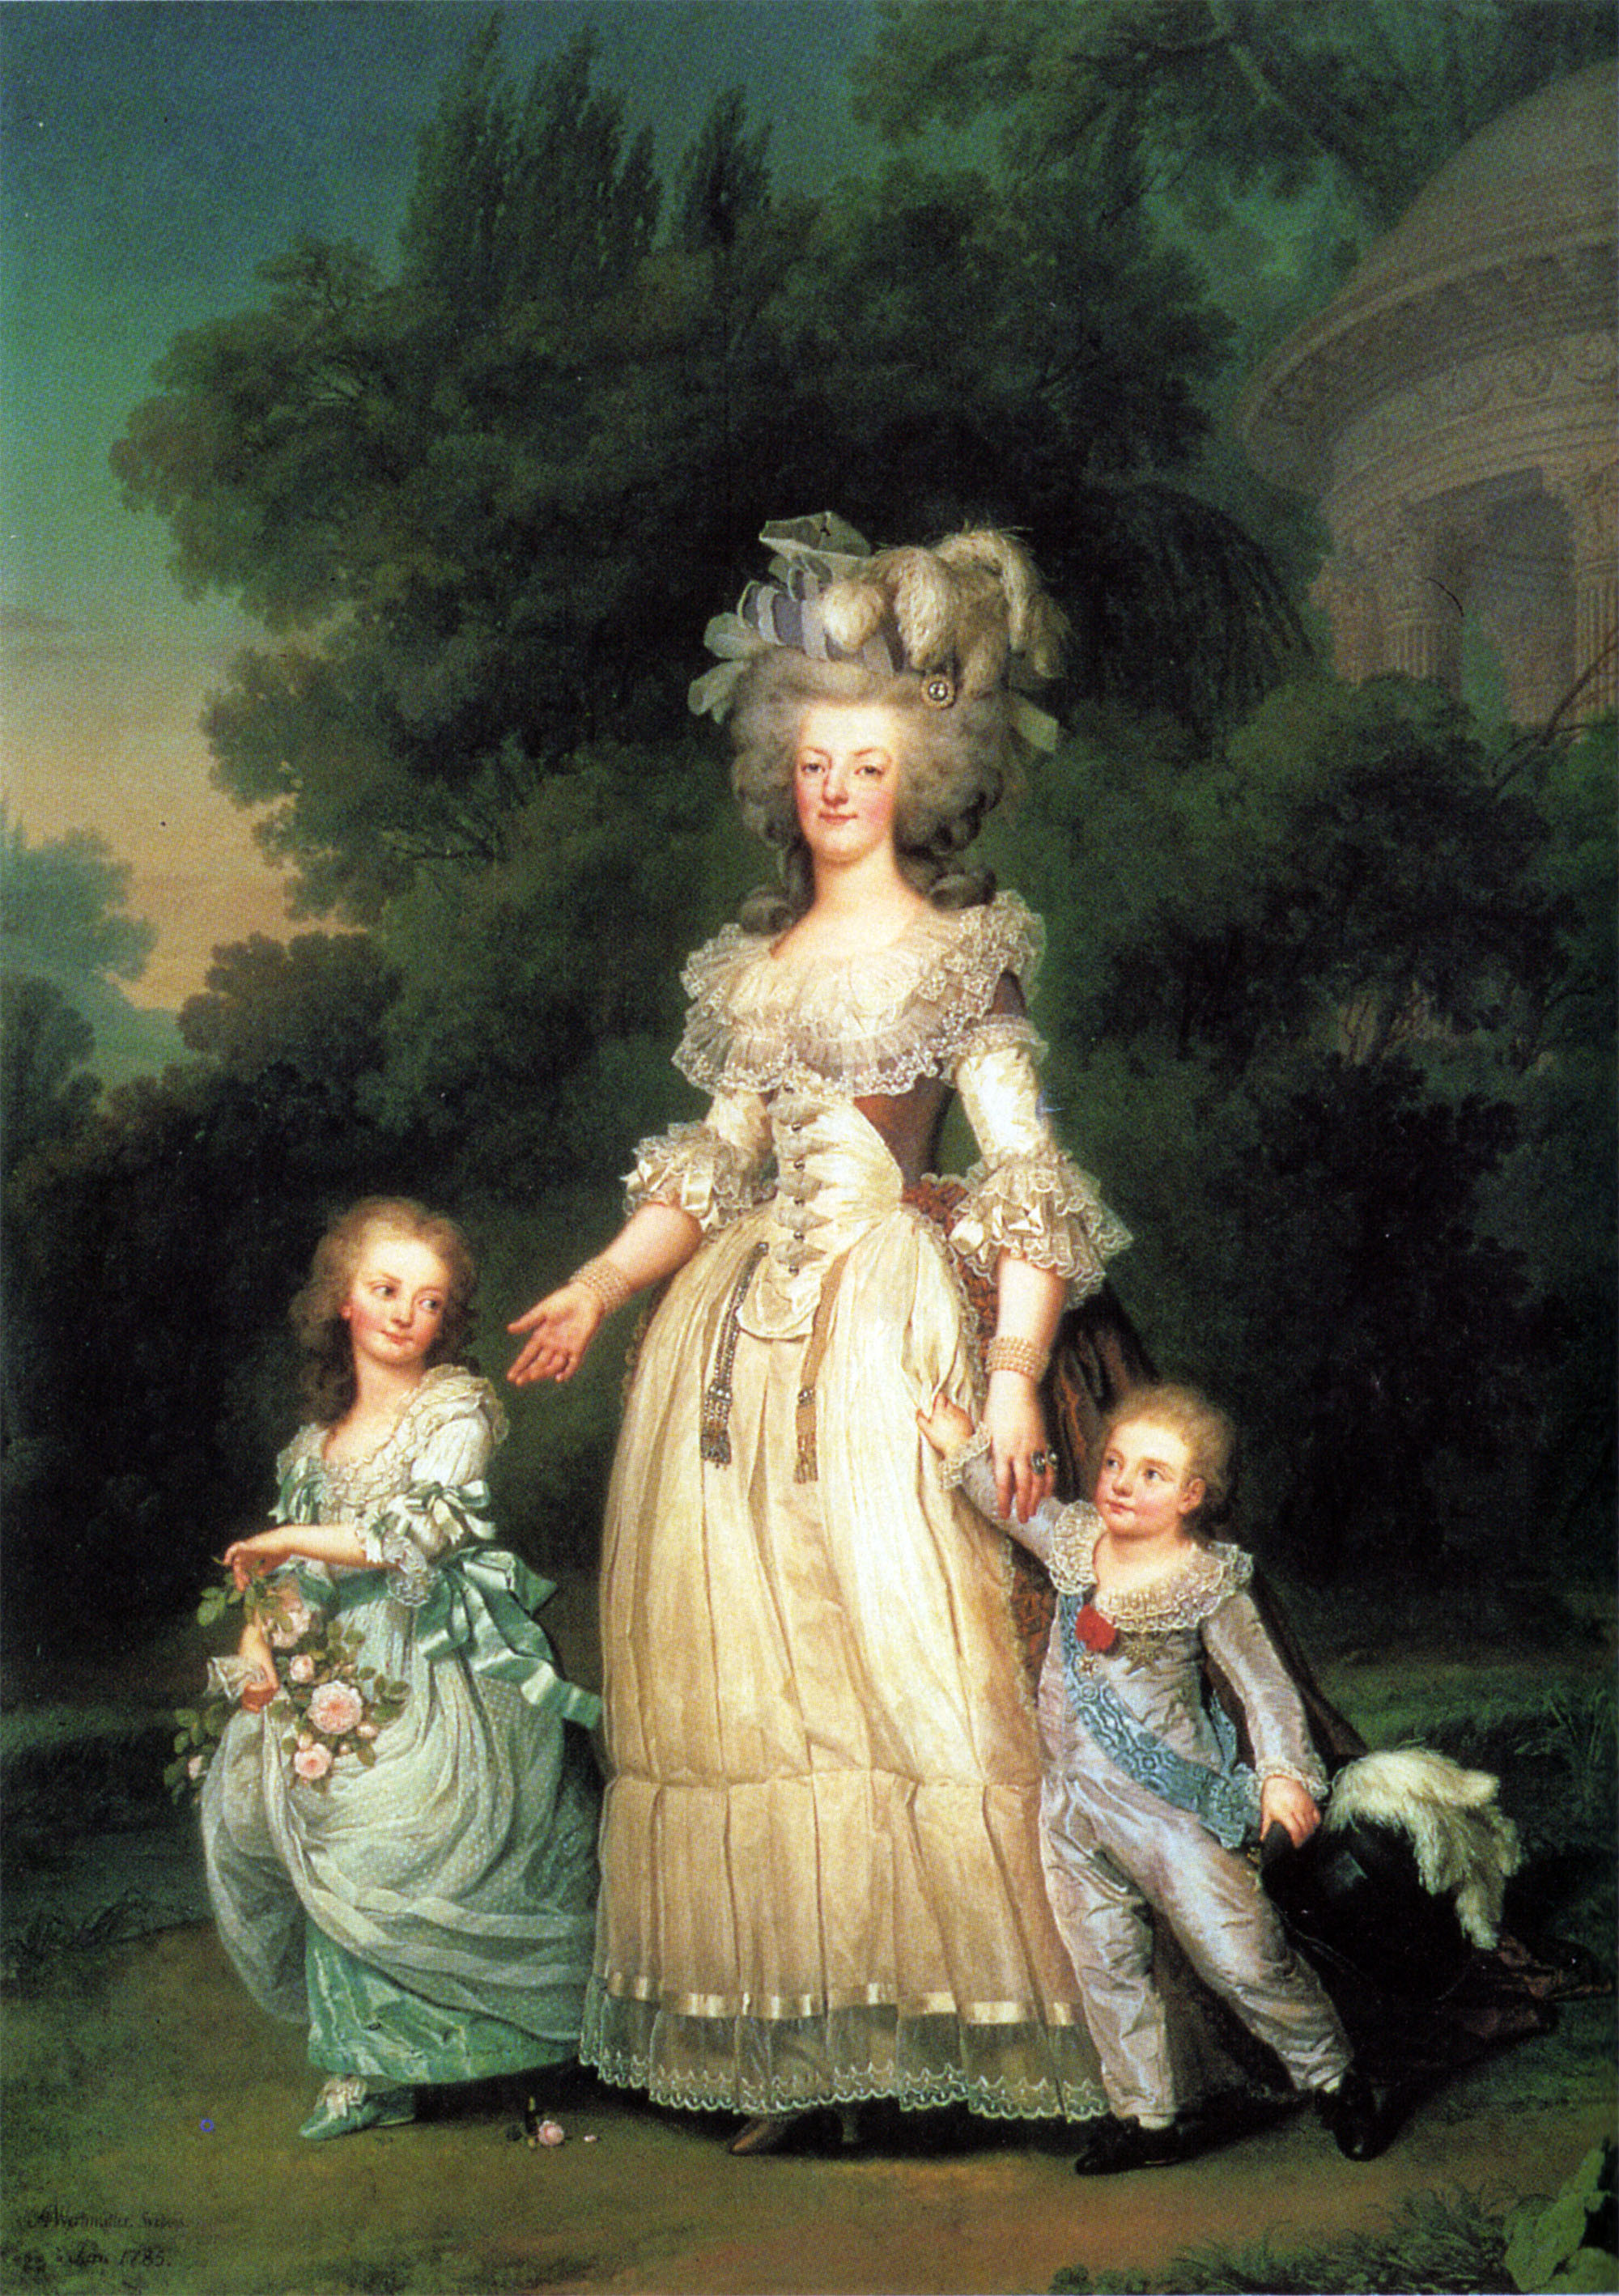 an overview of the marie antoinettes life in france Marie antoinette was the austrian born child bride of the future king louis xvi of france it was an arranged marriage designed to (hopefully) create.